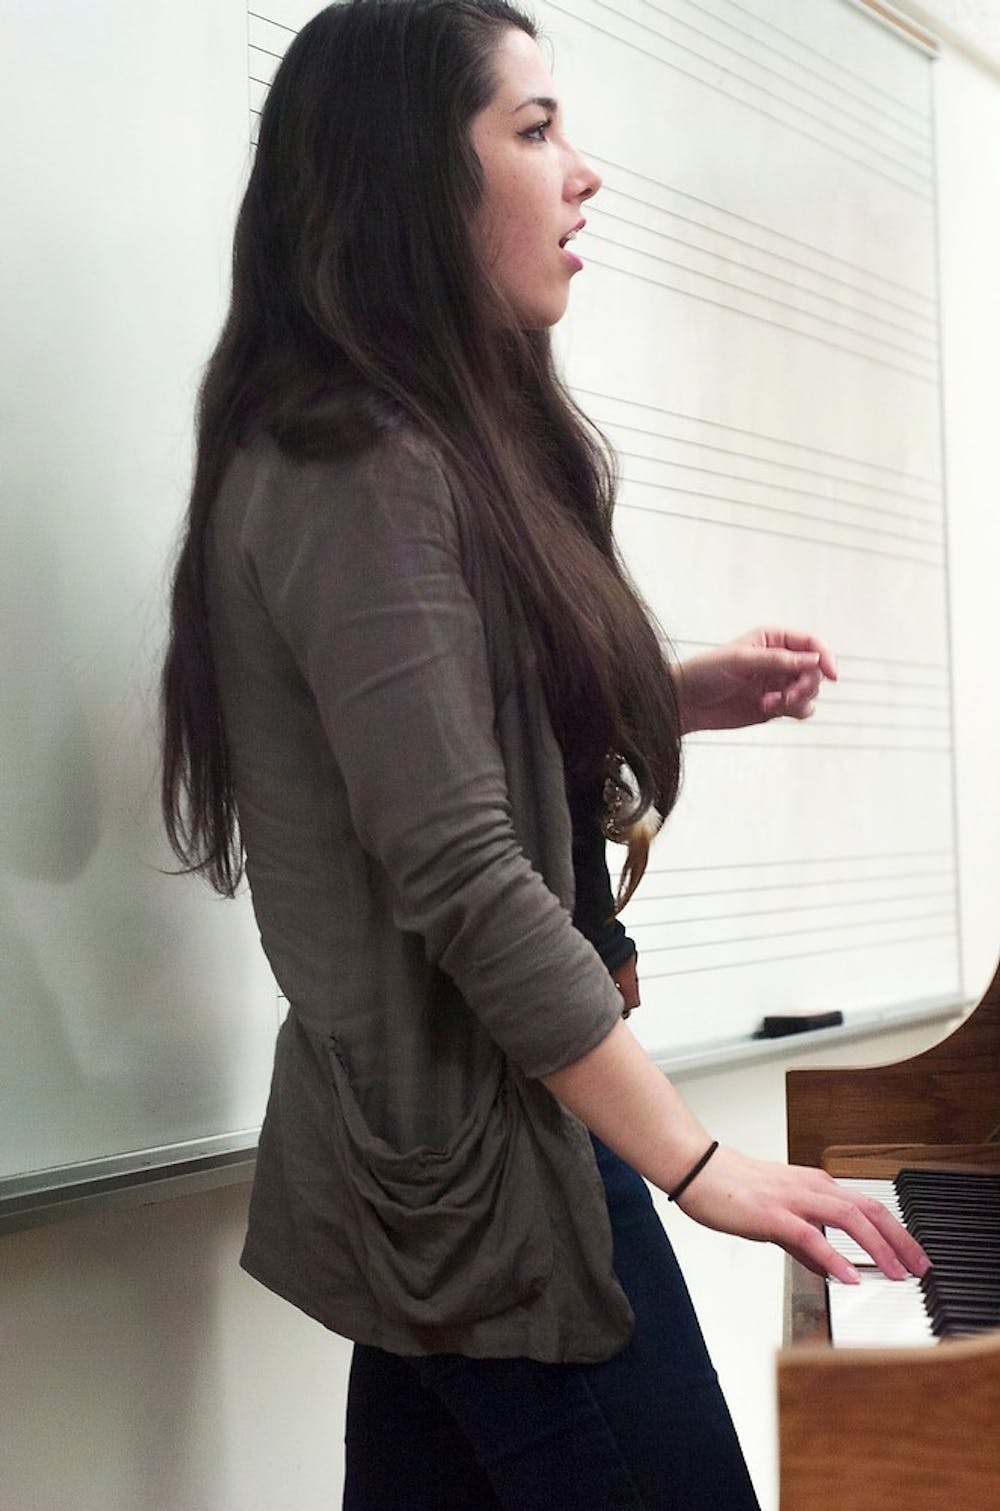 <p>Hospitality business sophomore and Capital Green A Capella member Hannah Schroeder assists students auditioning for the group by playing scales April 15, 2014, at Music Practice Building. Schroeder played notes while students repeated the notes to demonstrate their vocal range. Meagan Beck/The State News</p>